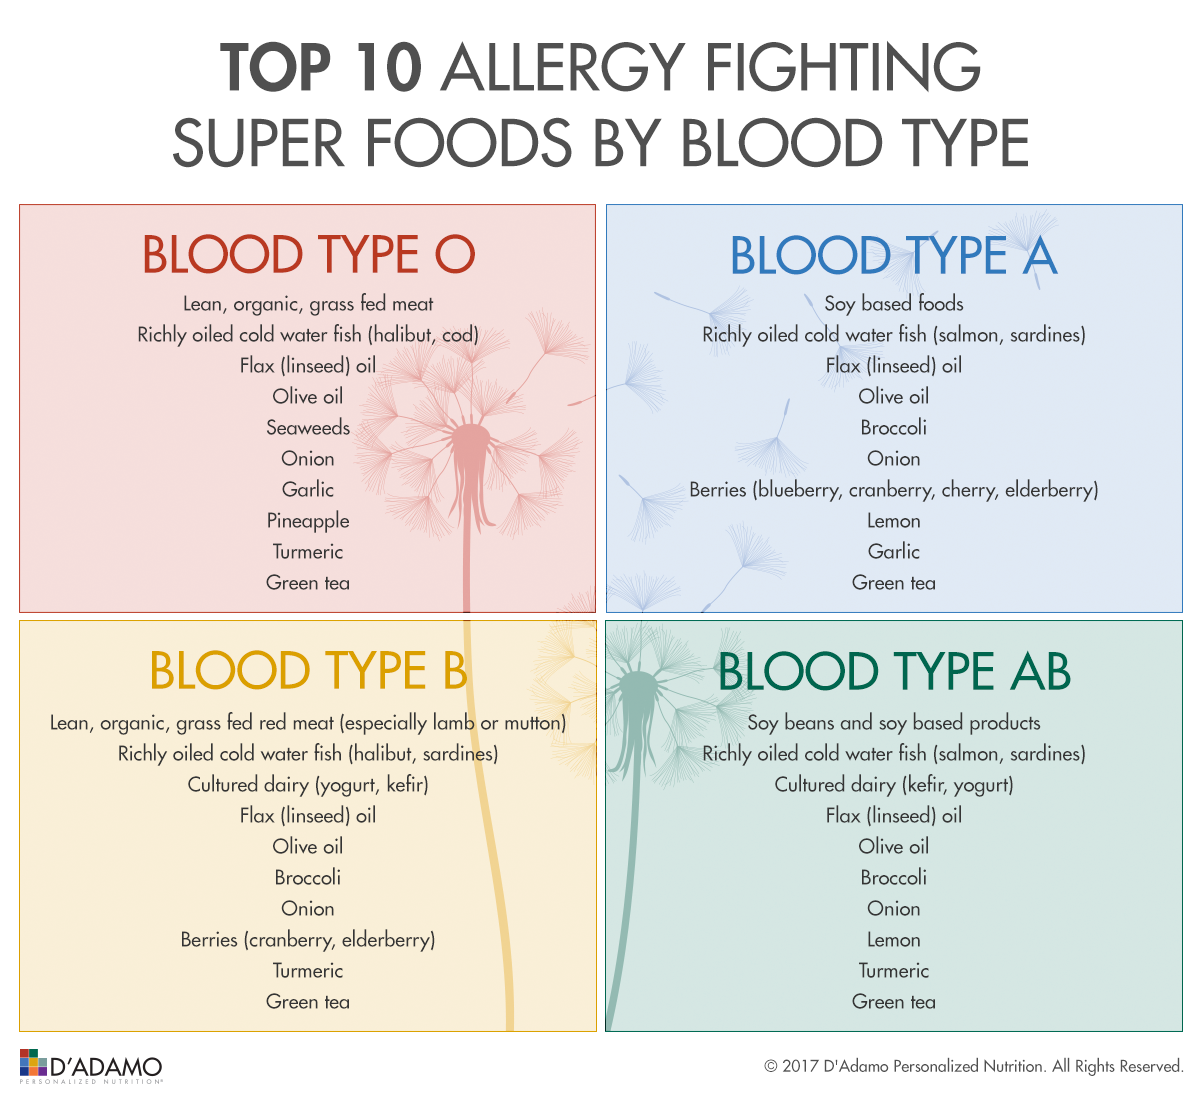 Top 10 Allergy Fighting Super Foods by Blood Type